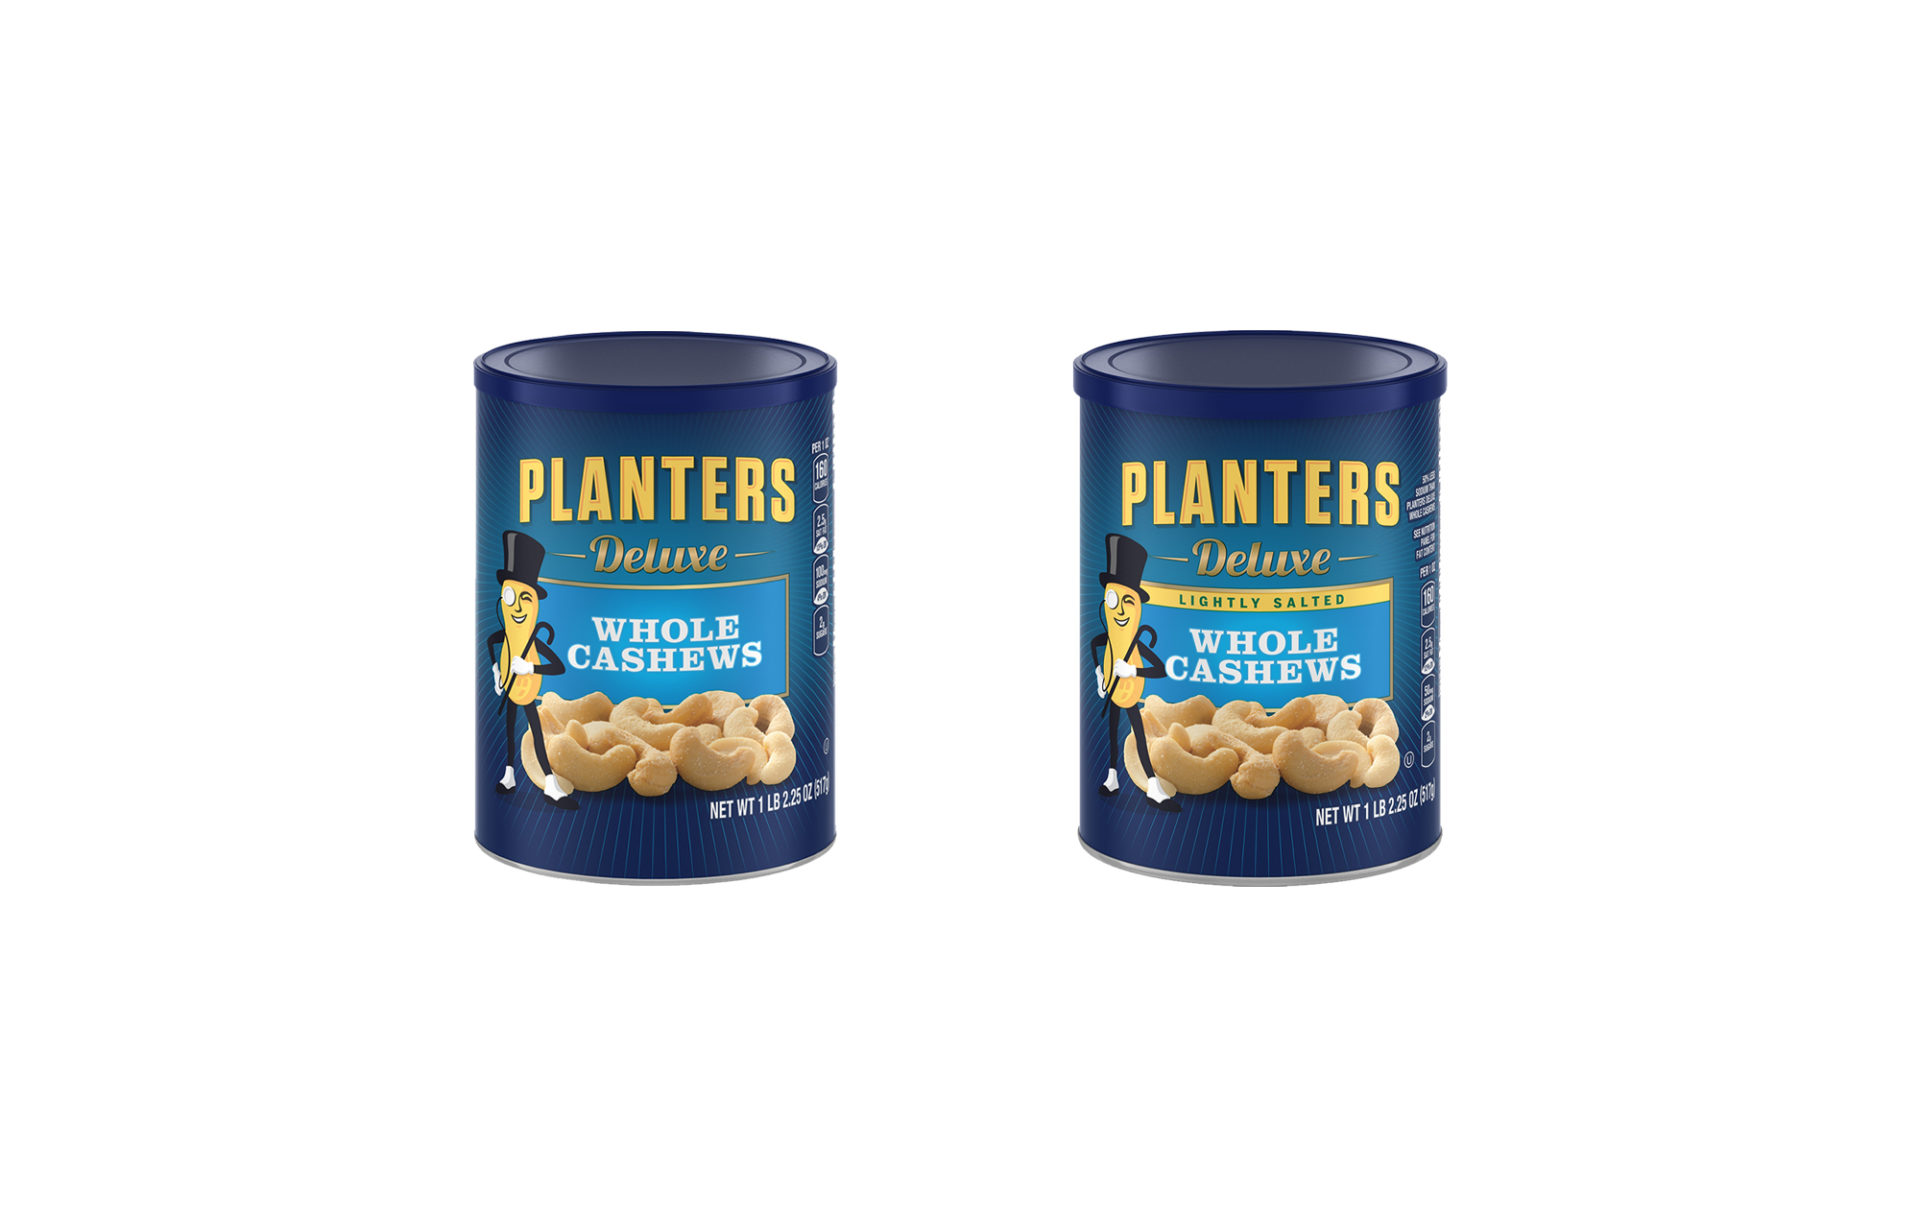 Planters Product